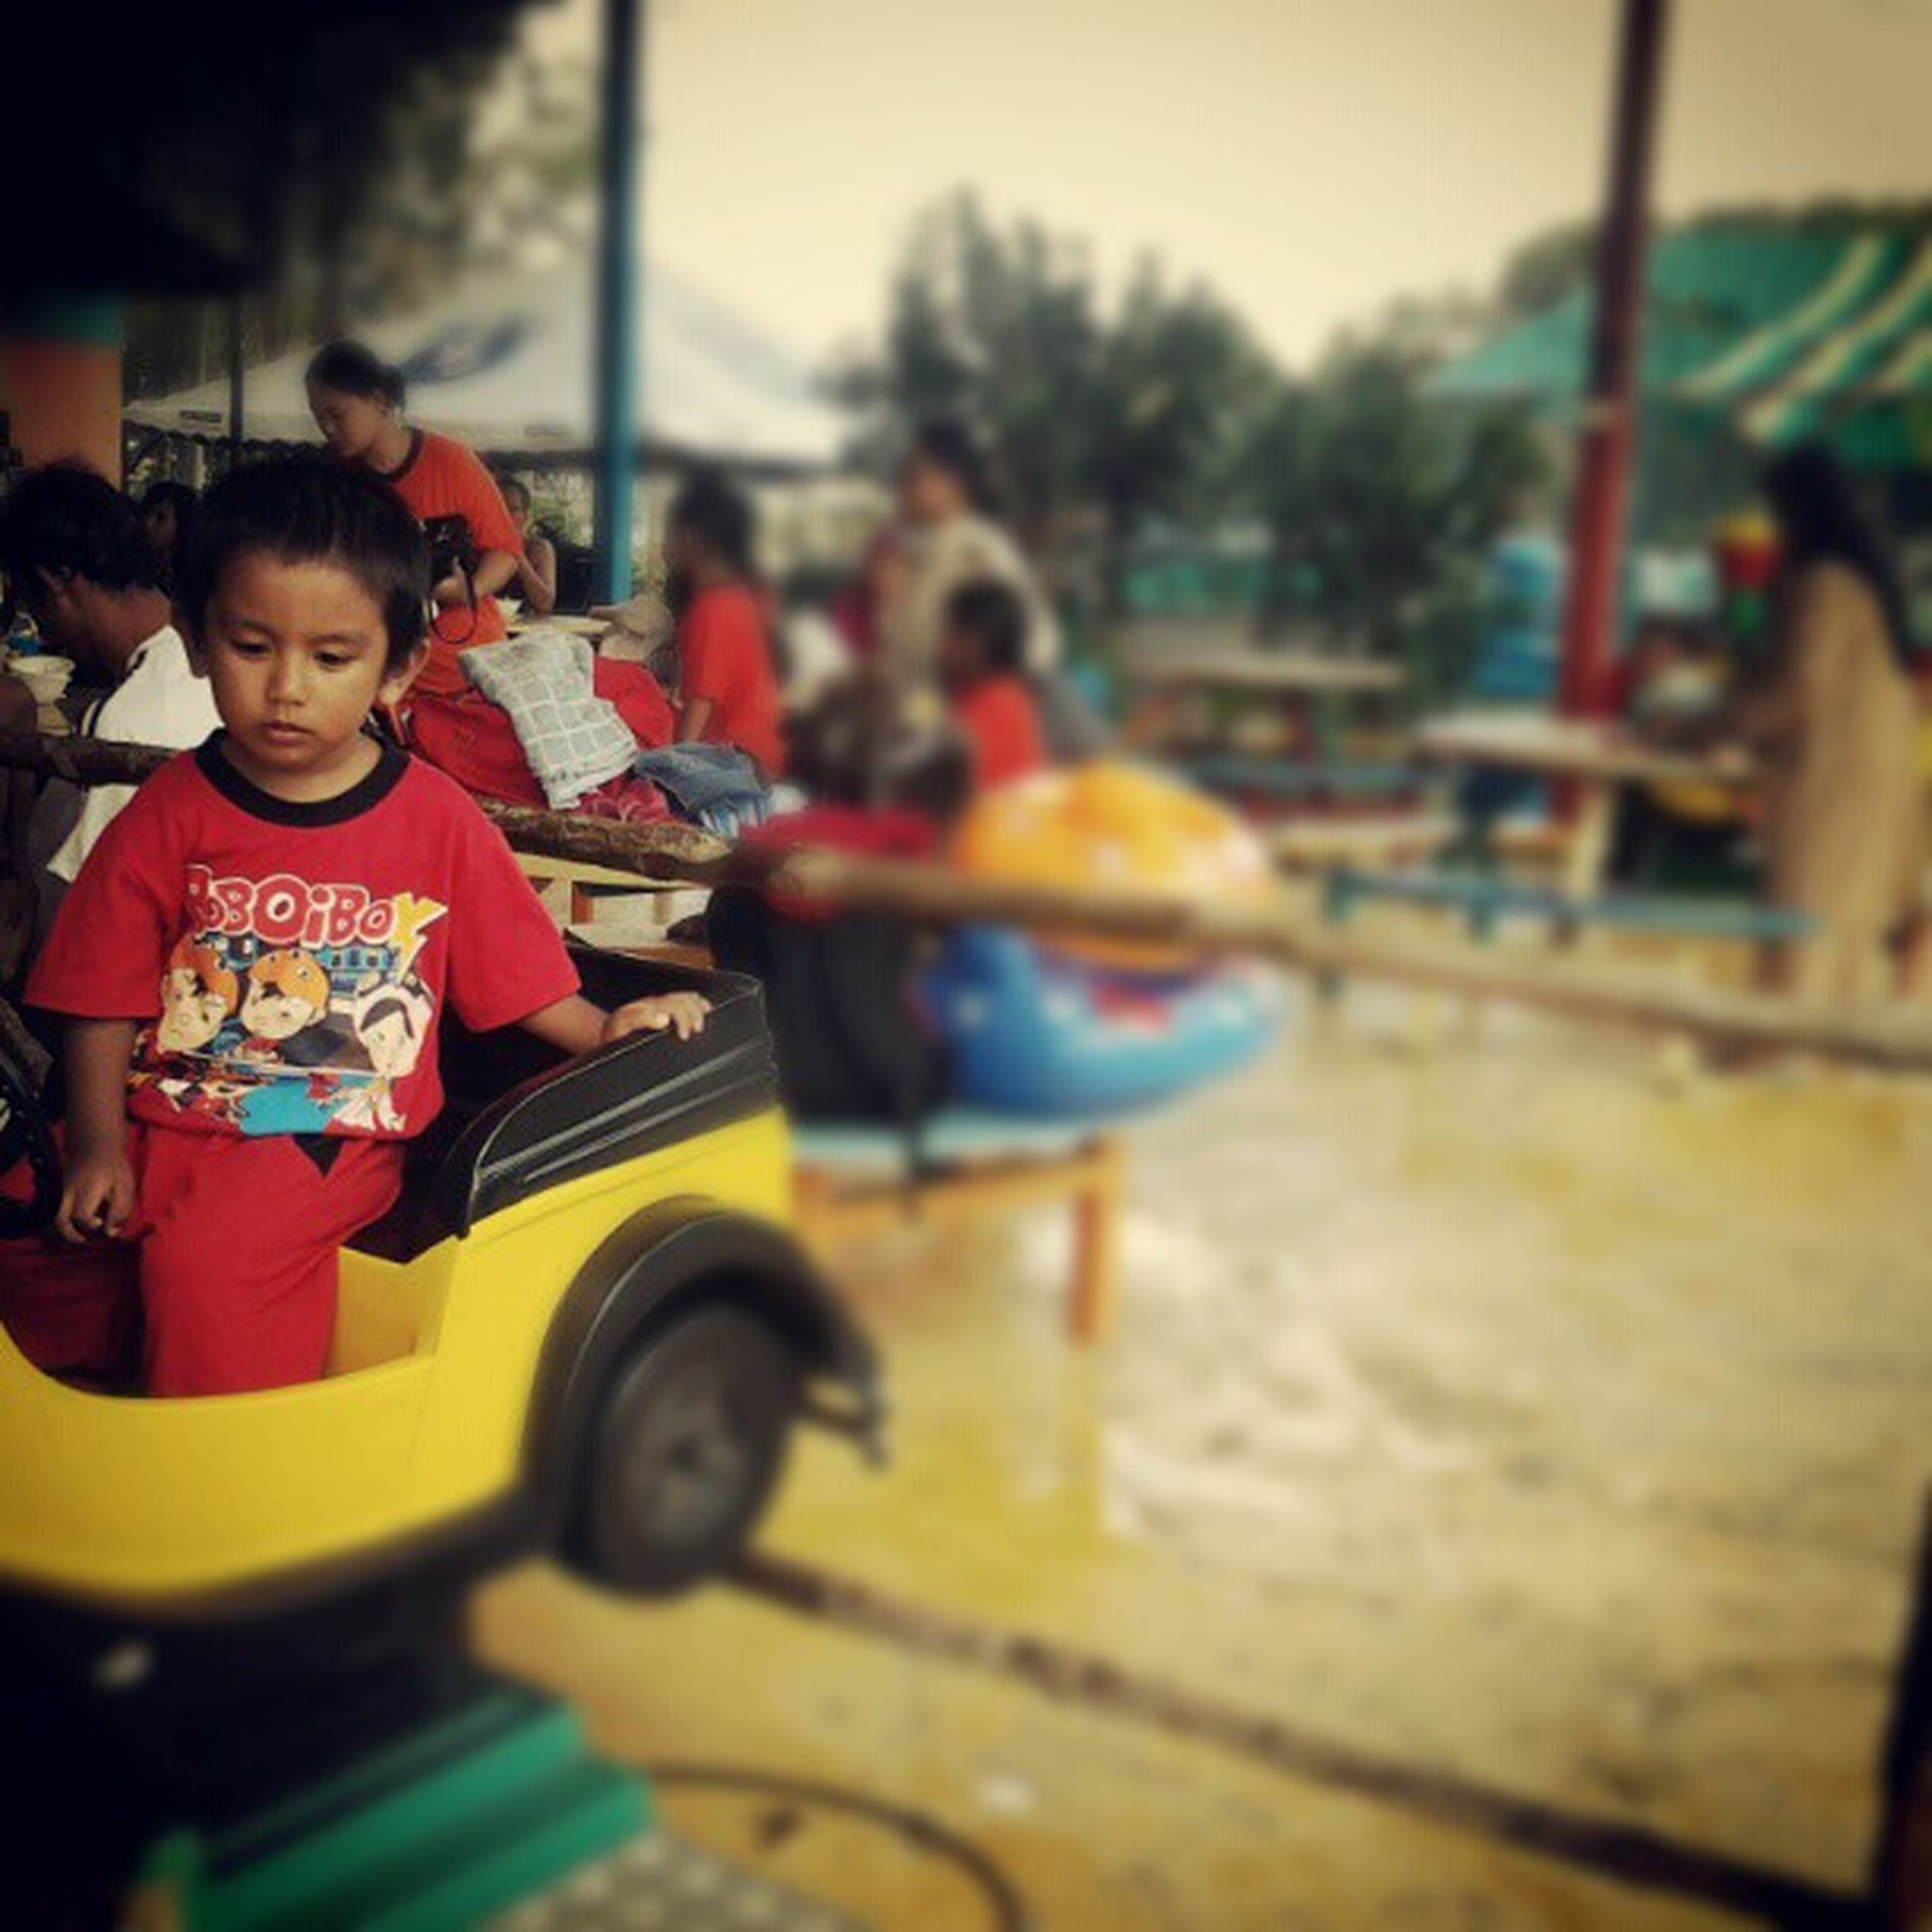 childhood, lifestyles, leisure activity, boys, person, togetherness, elementary age, casual clothing, bonding, girls, love, sitting, innocence, full length, playing, fun, enjoyment, smiling